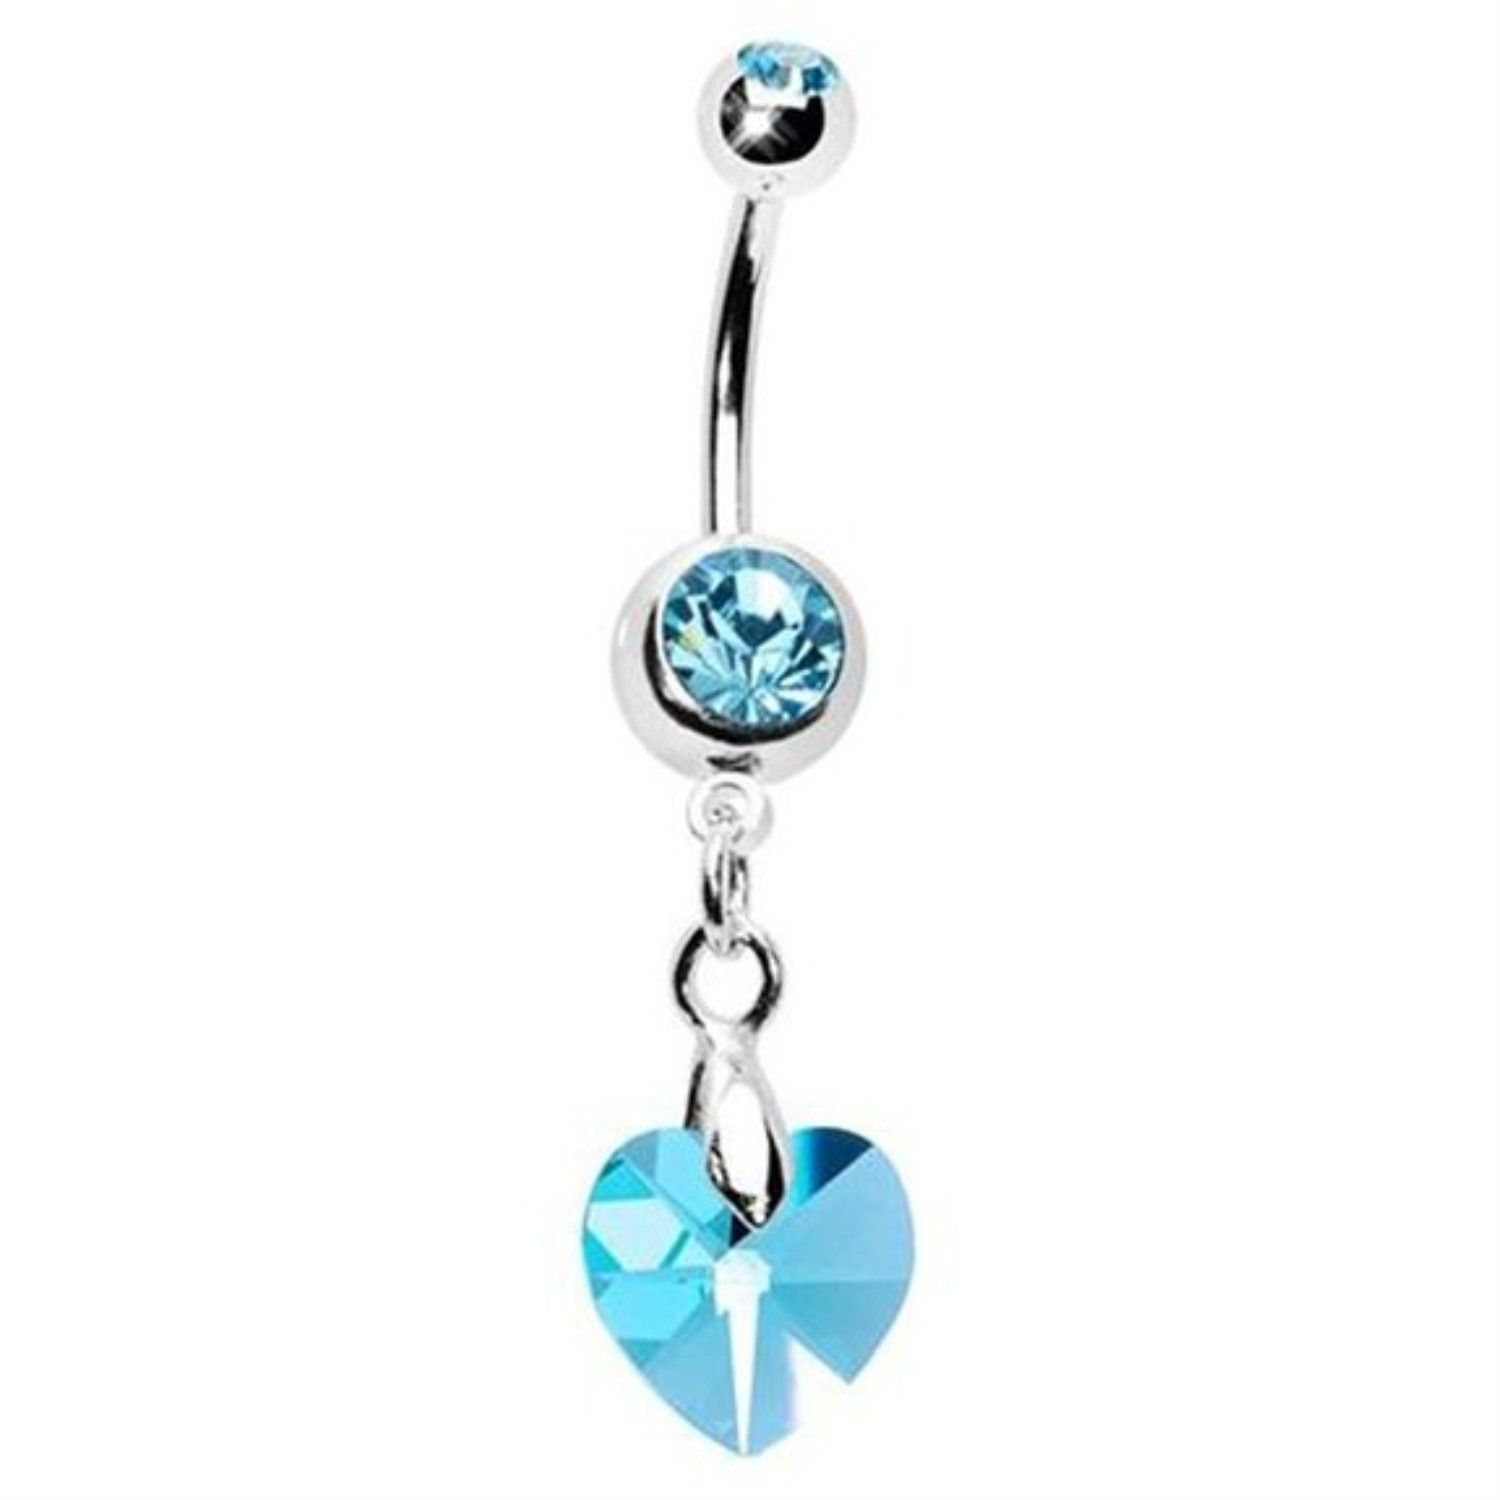 Body piercing retainer  Heart Crystal Belly Ring Aqua Heart Crystal with Surgical Steel